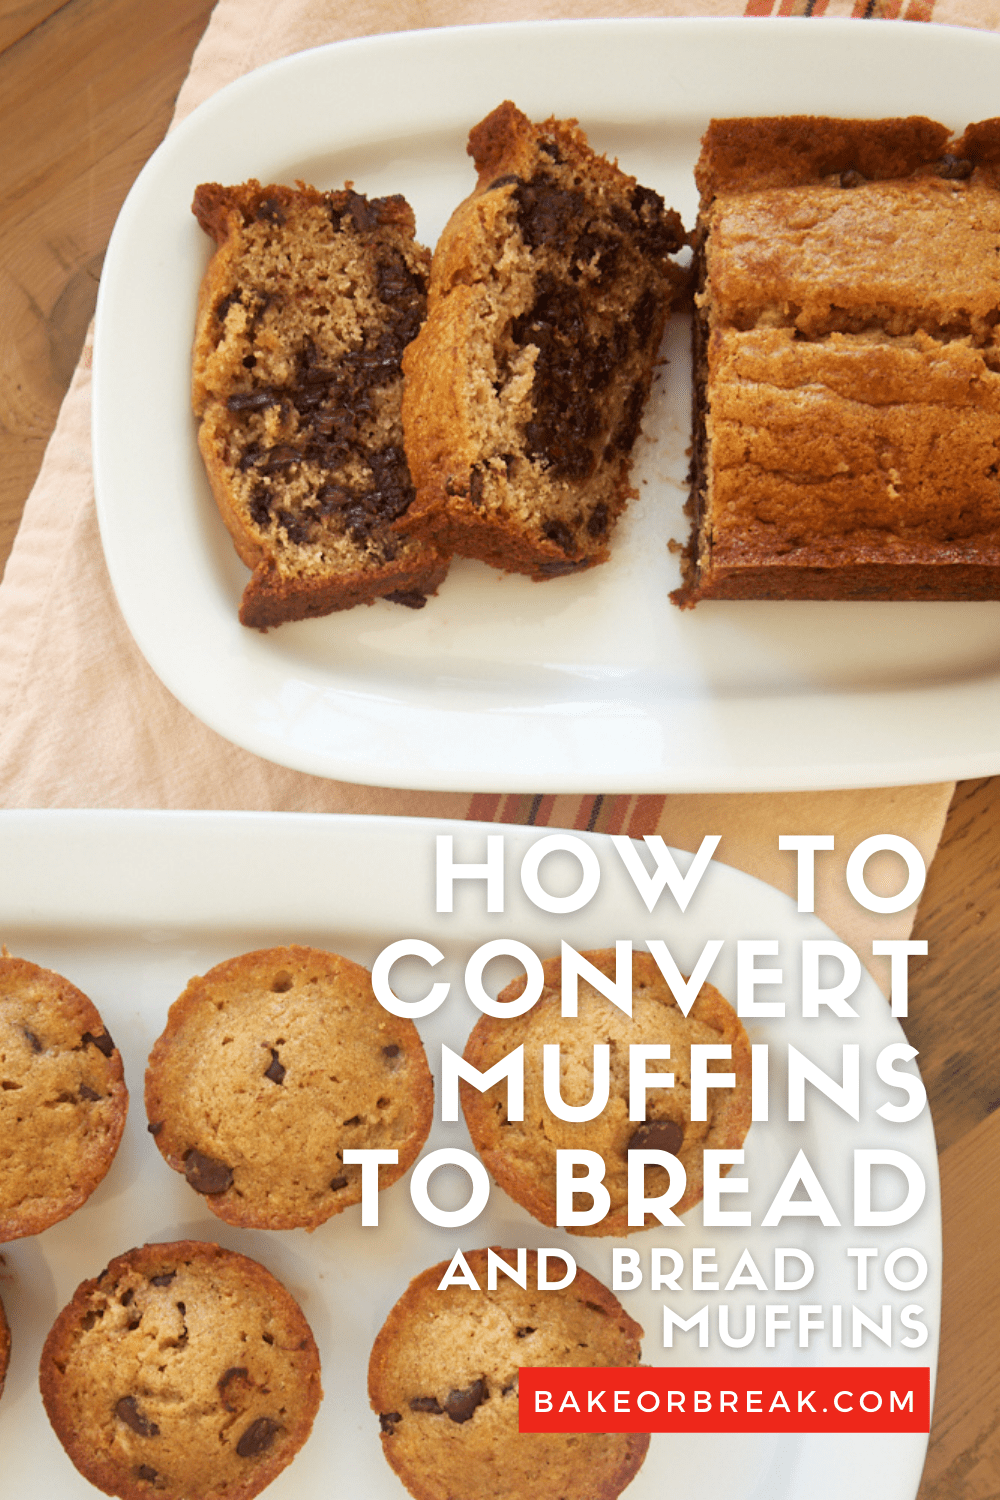 How to Convert Muffins to Bread and Bread to Muffins bakeorbreak.com